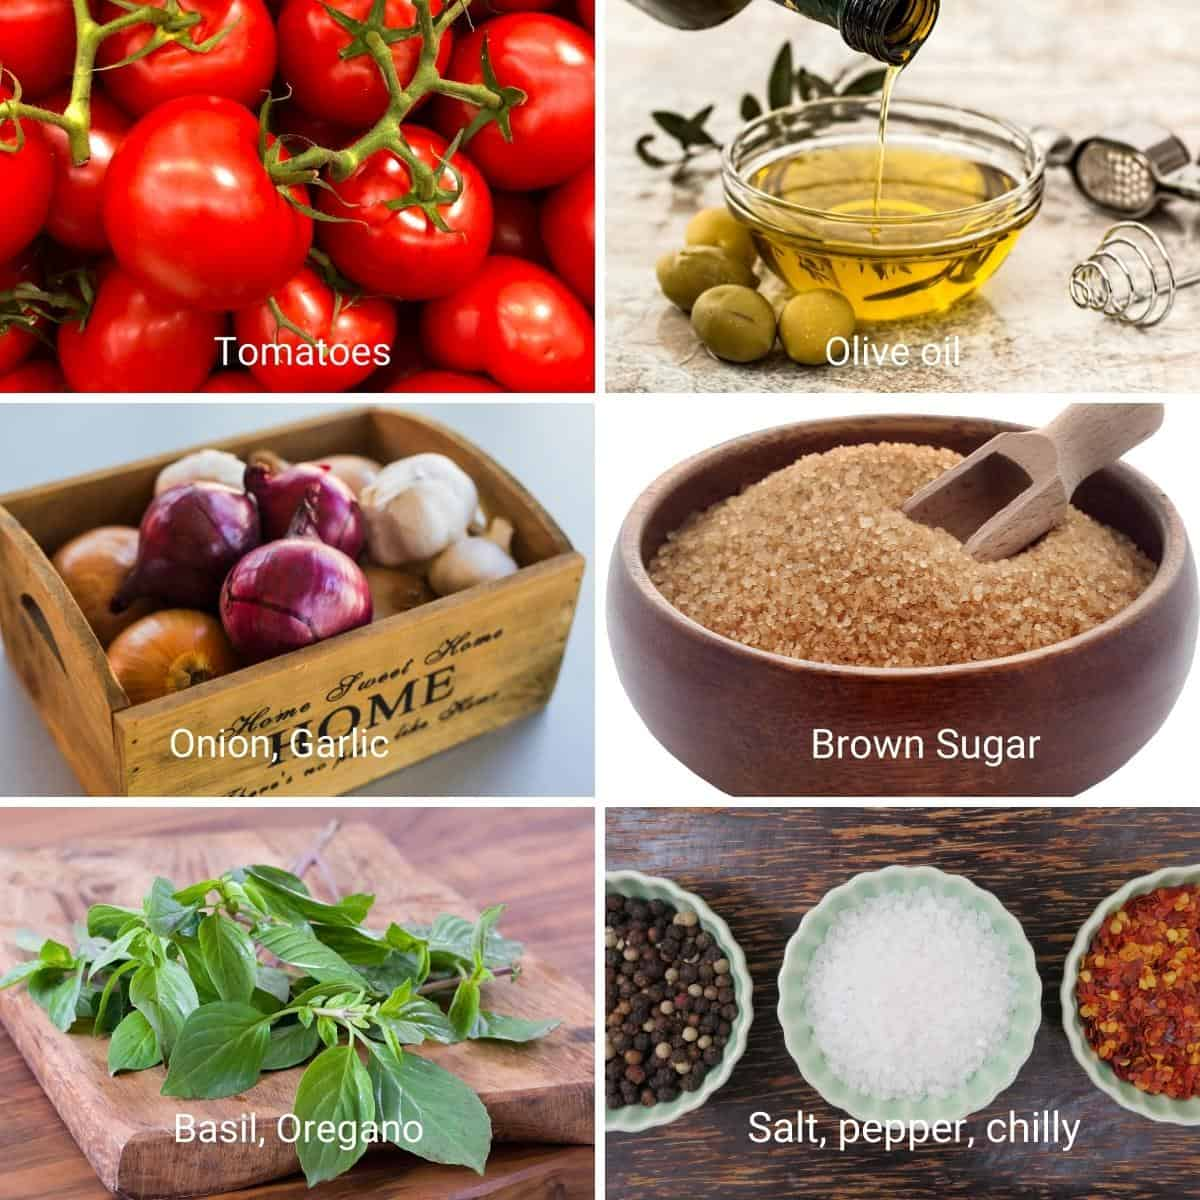 Ingredients for homemade marinara sauce with fresh tomatoes.